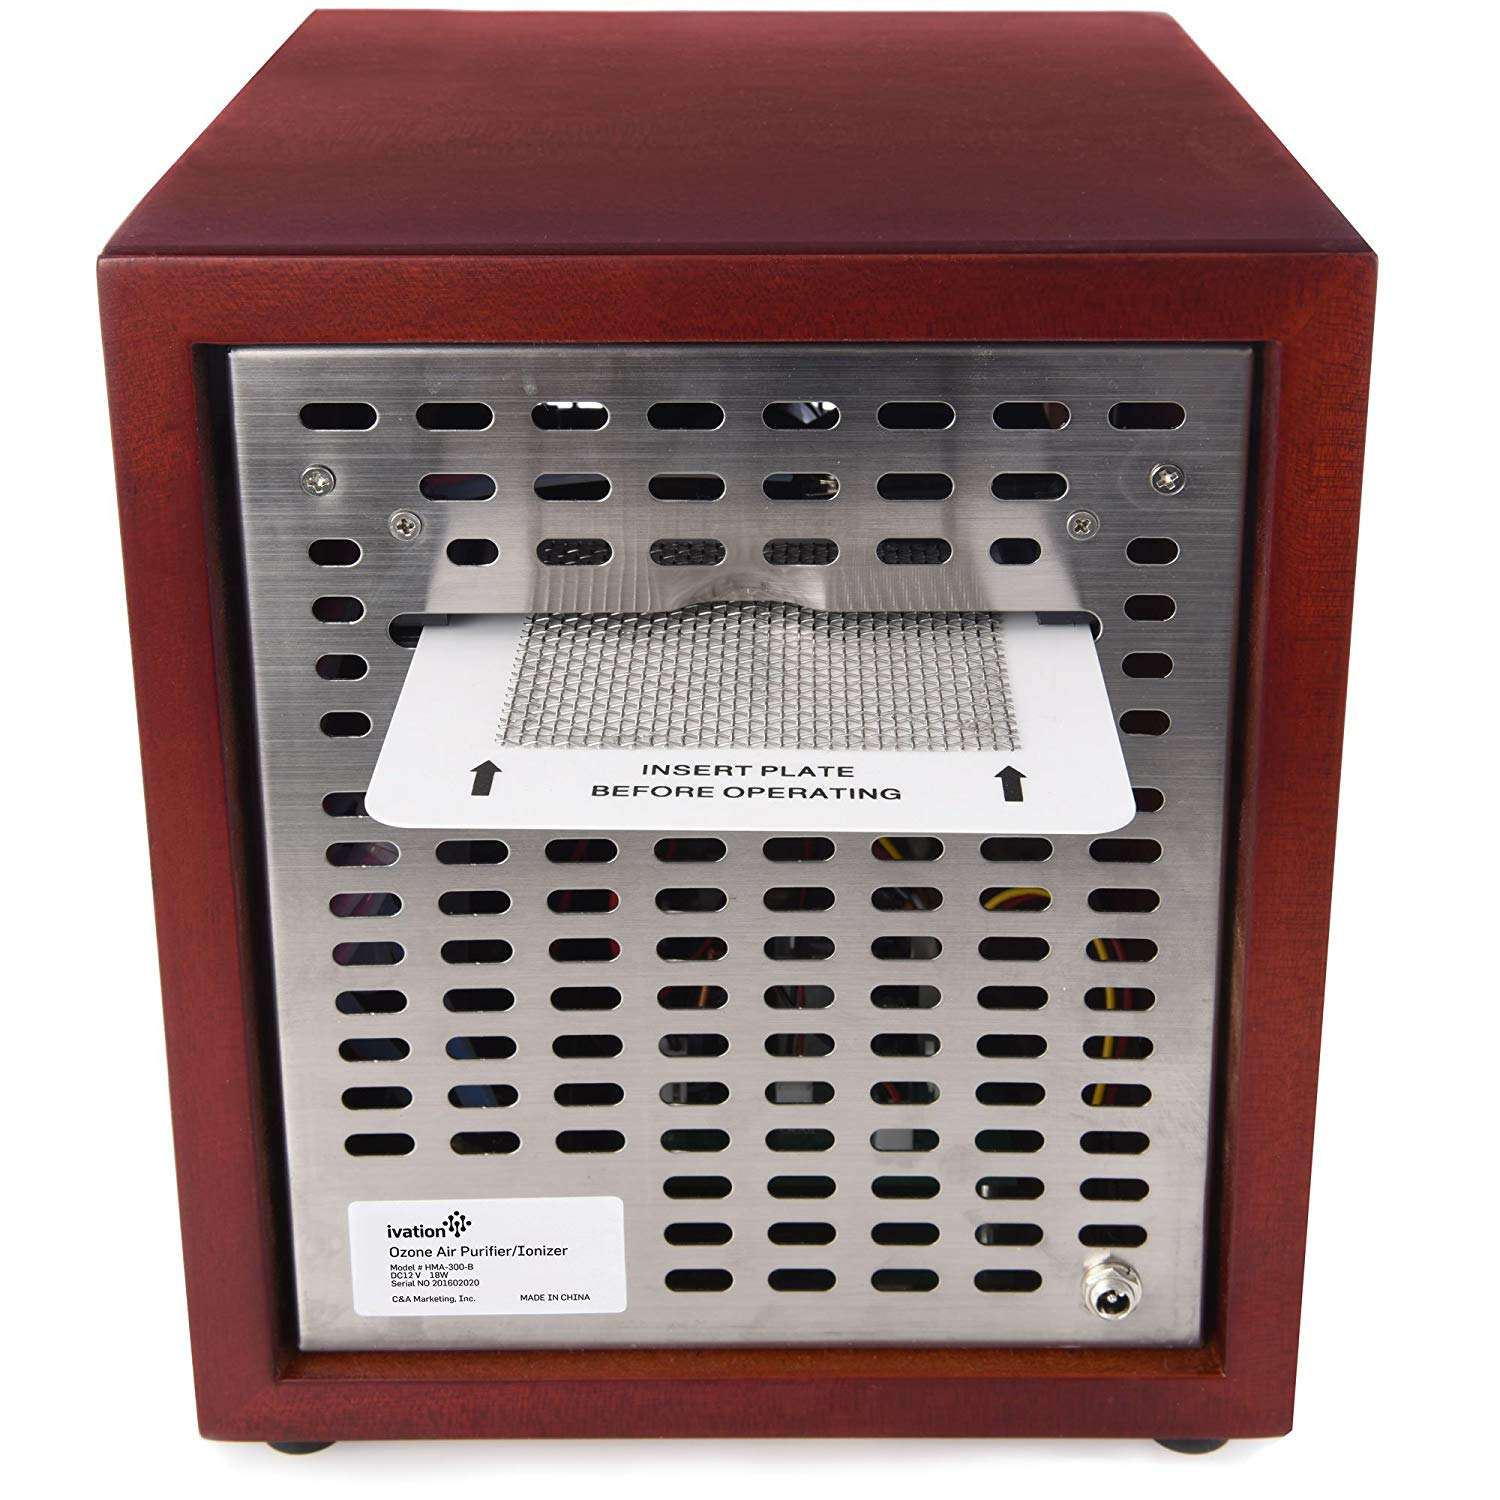 Best Filterless Air Purifier - #3 Ivation Ozone Generator Ozone Plate Slot